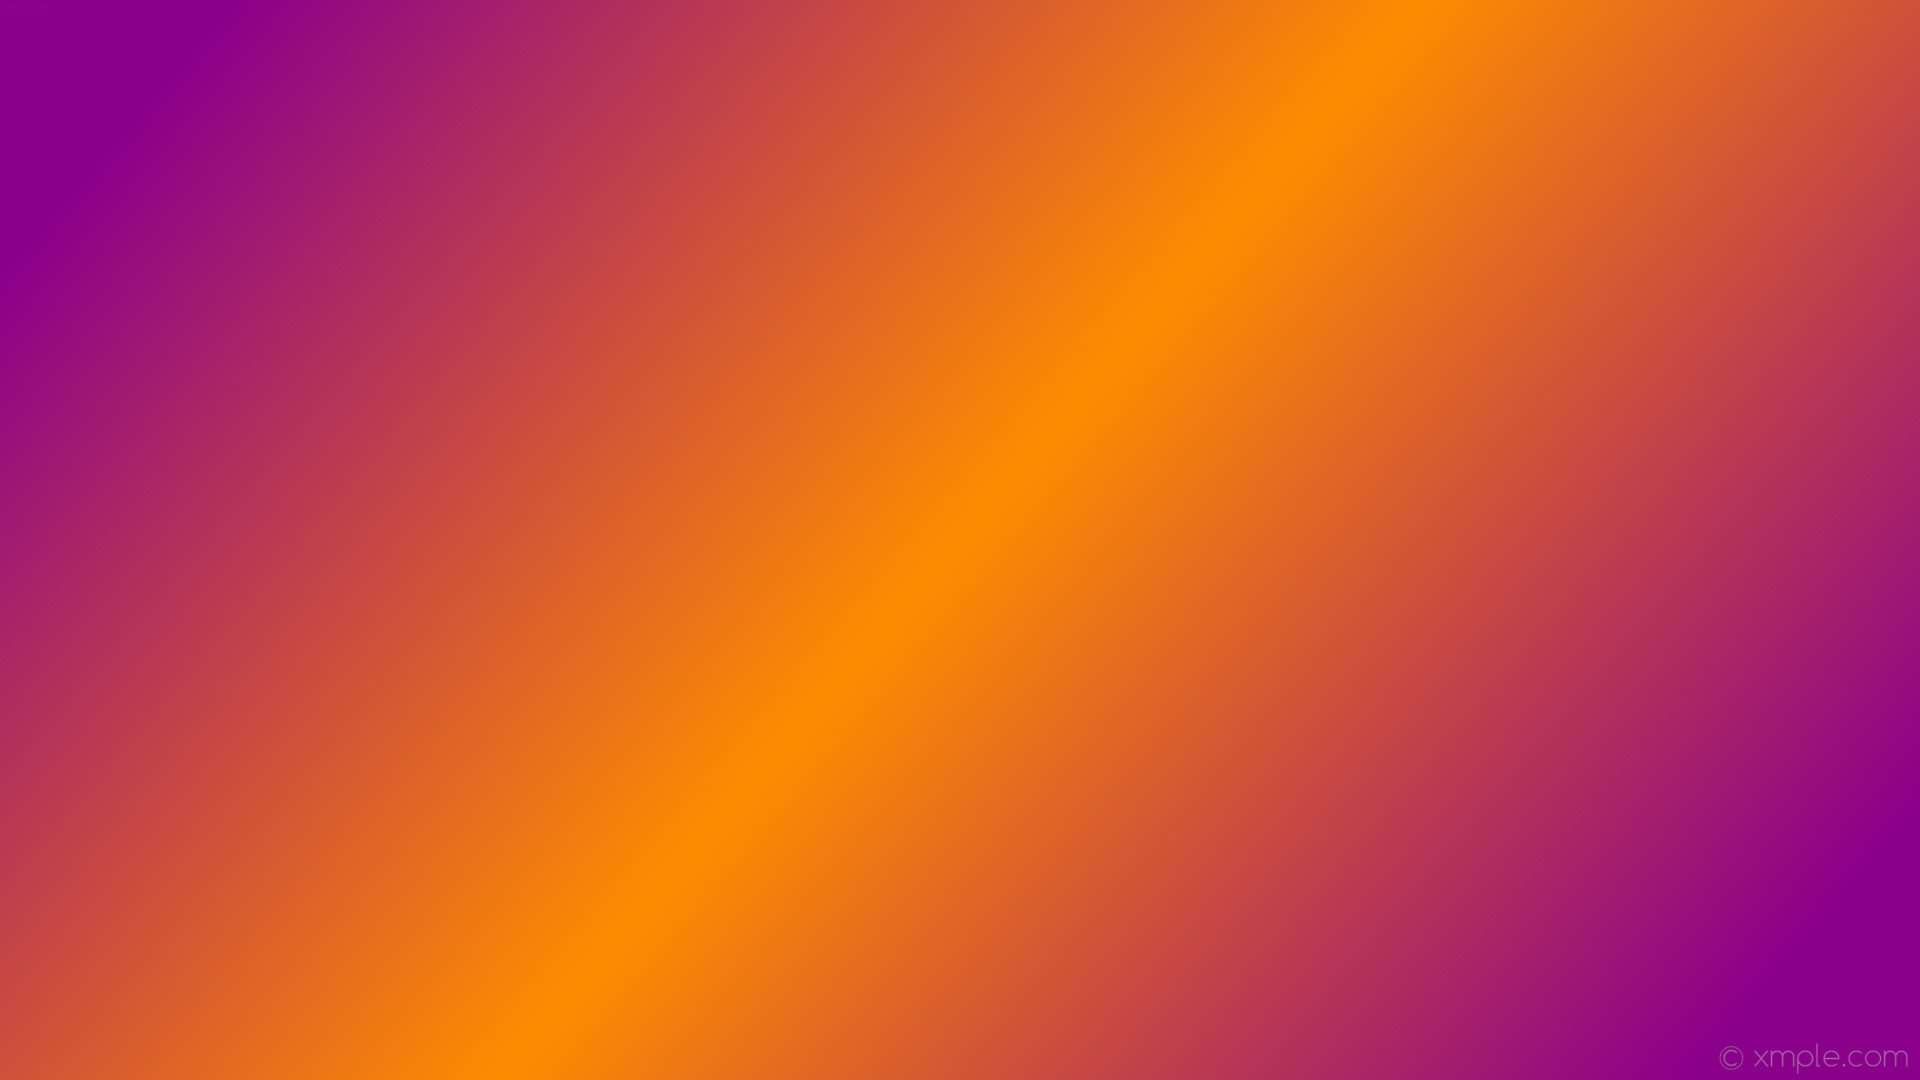 orange and purple backgrounds (53+ images)